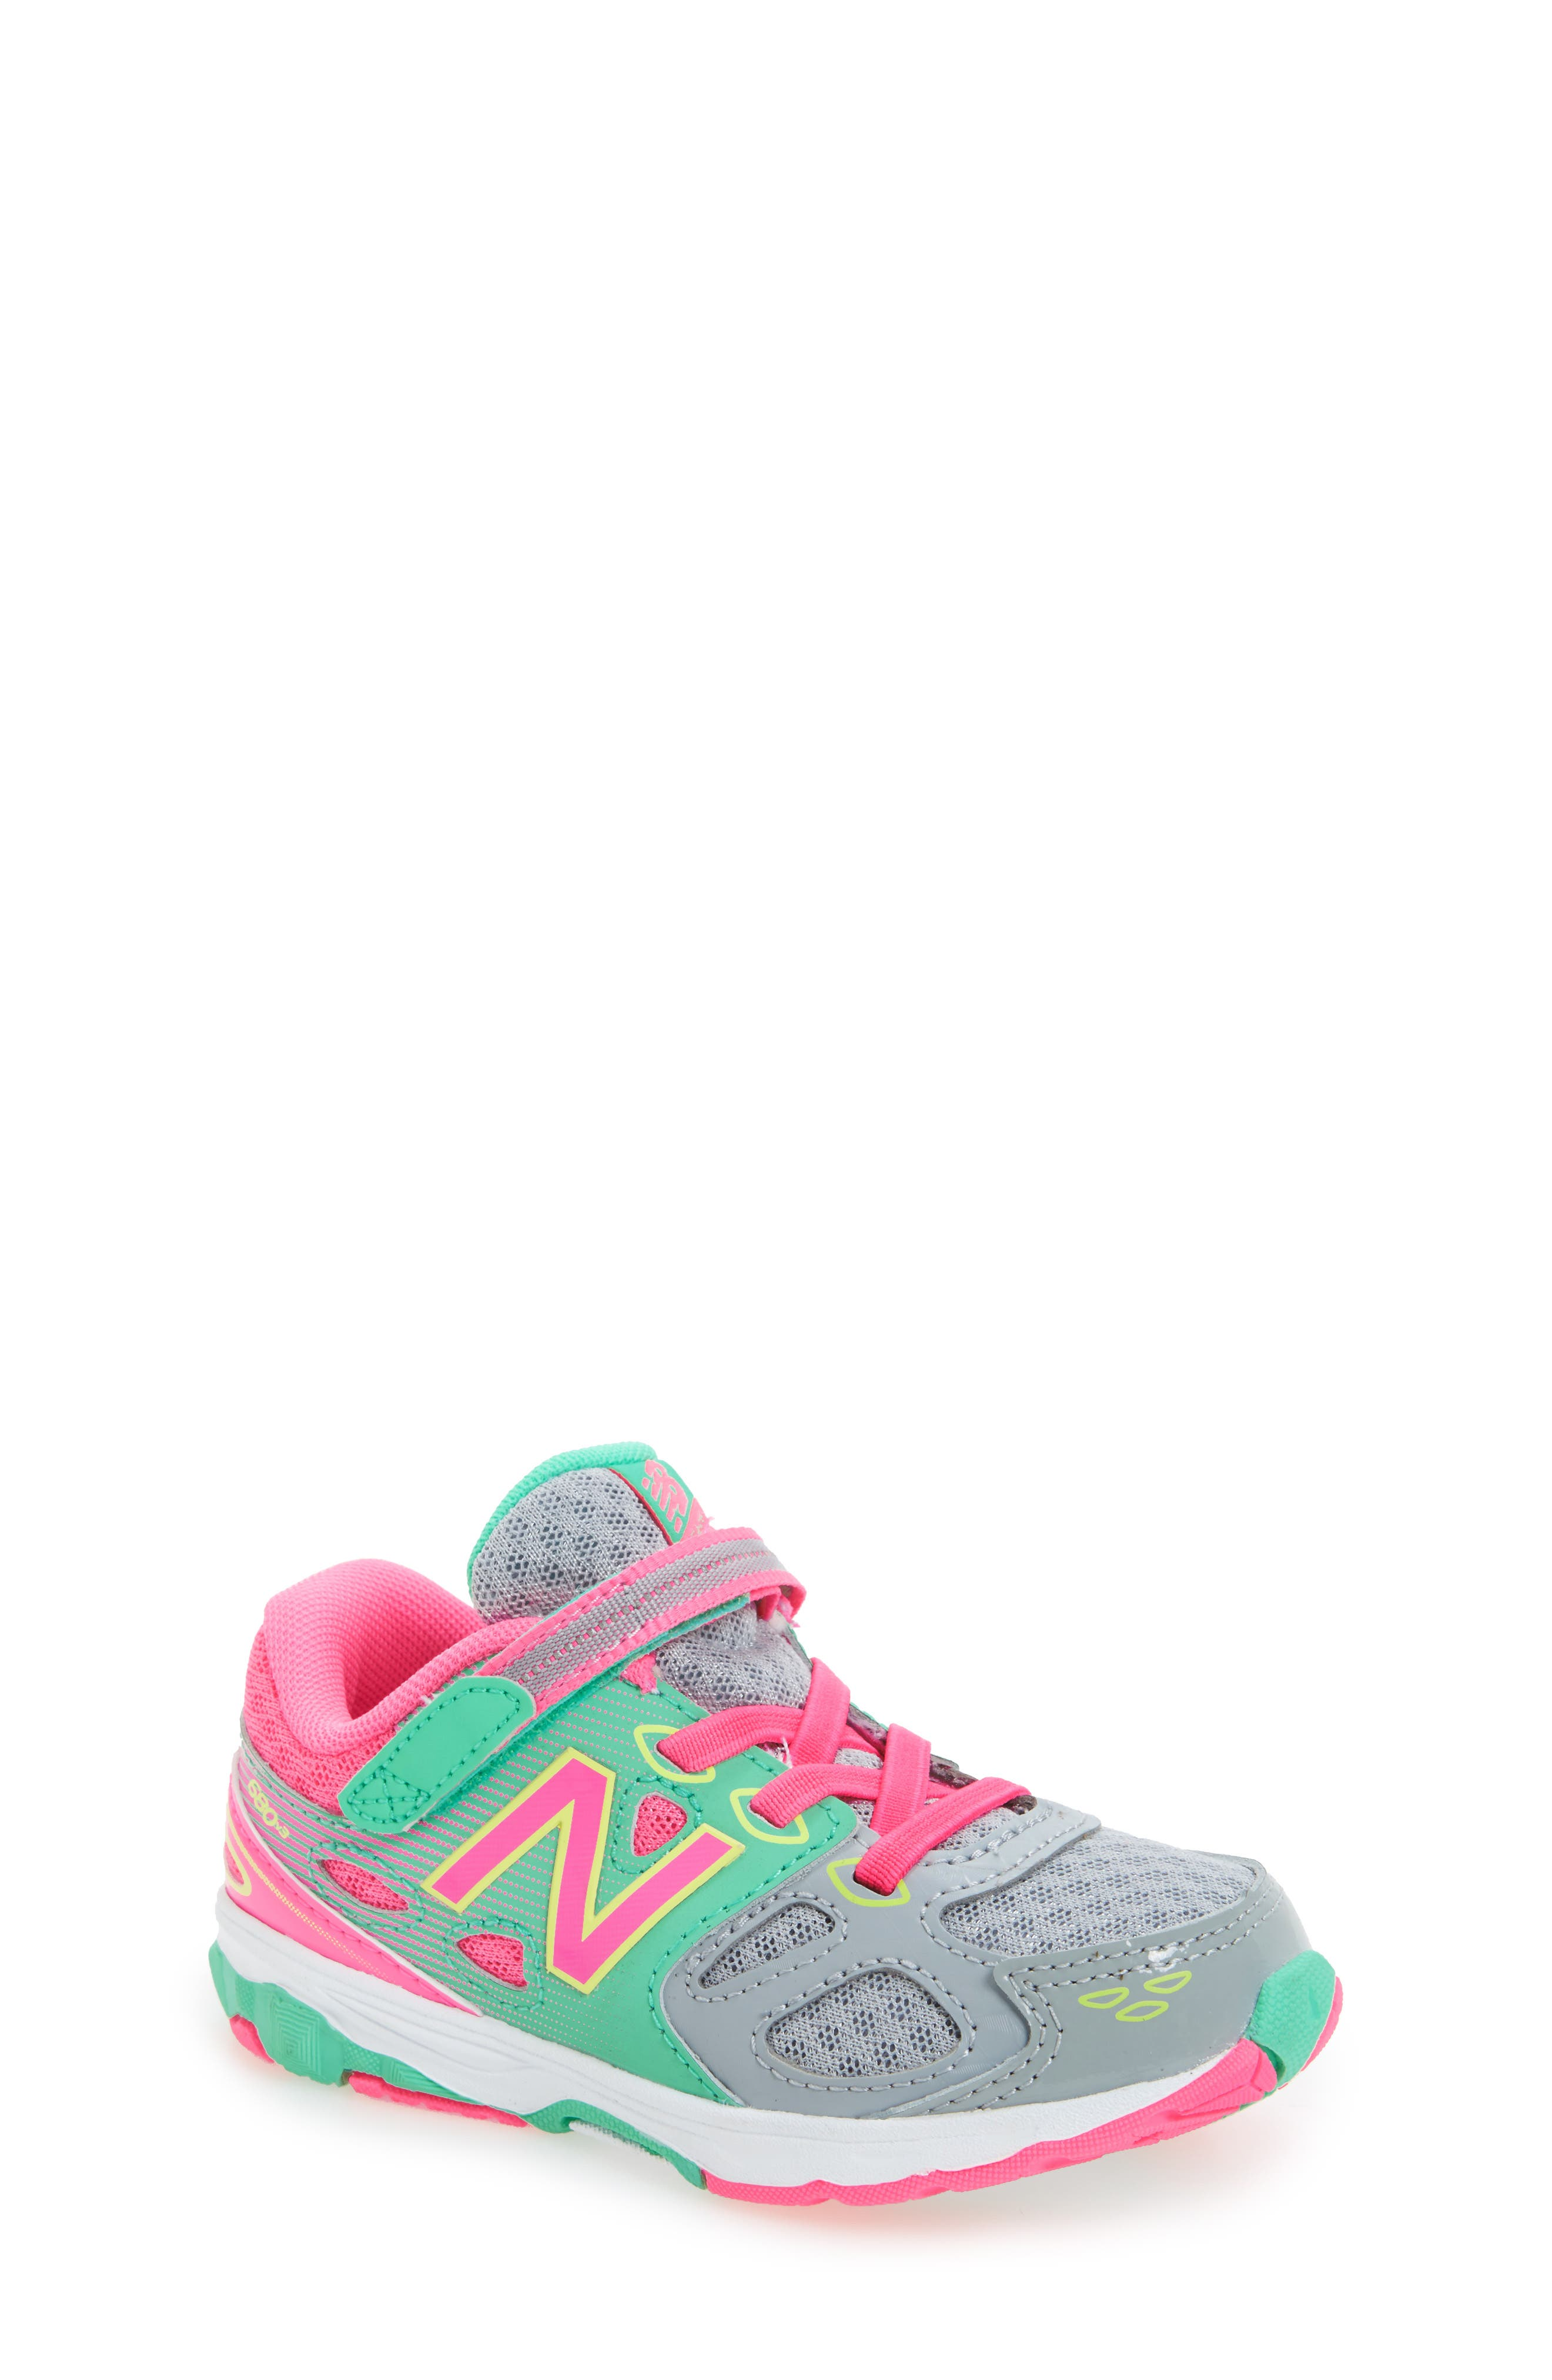 Alternate Image 1 Selected - New Balance 680v3 Sneaker (Baby, Walker, Toddler, Little Kid & Big Kid)